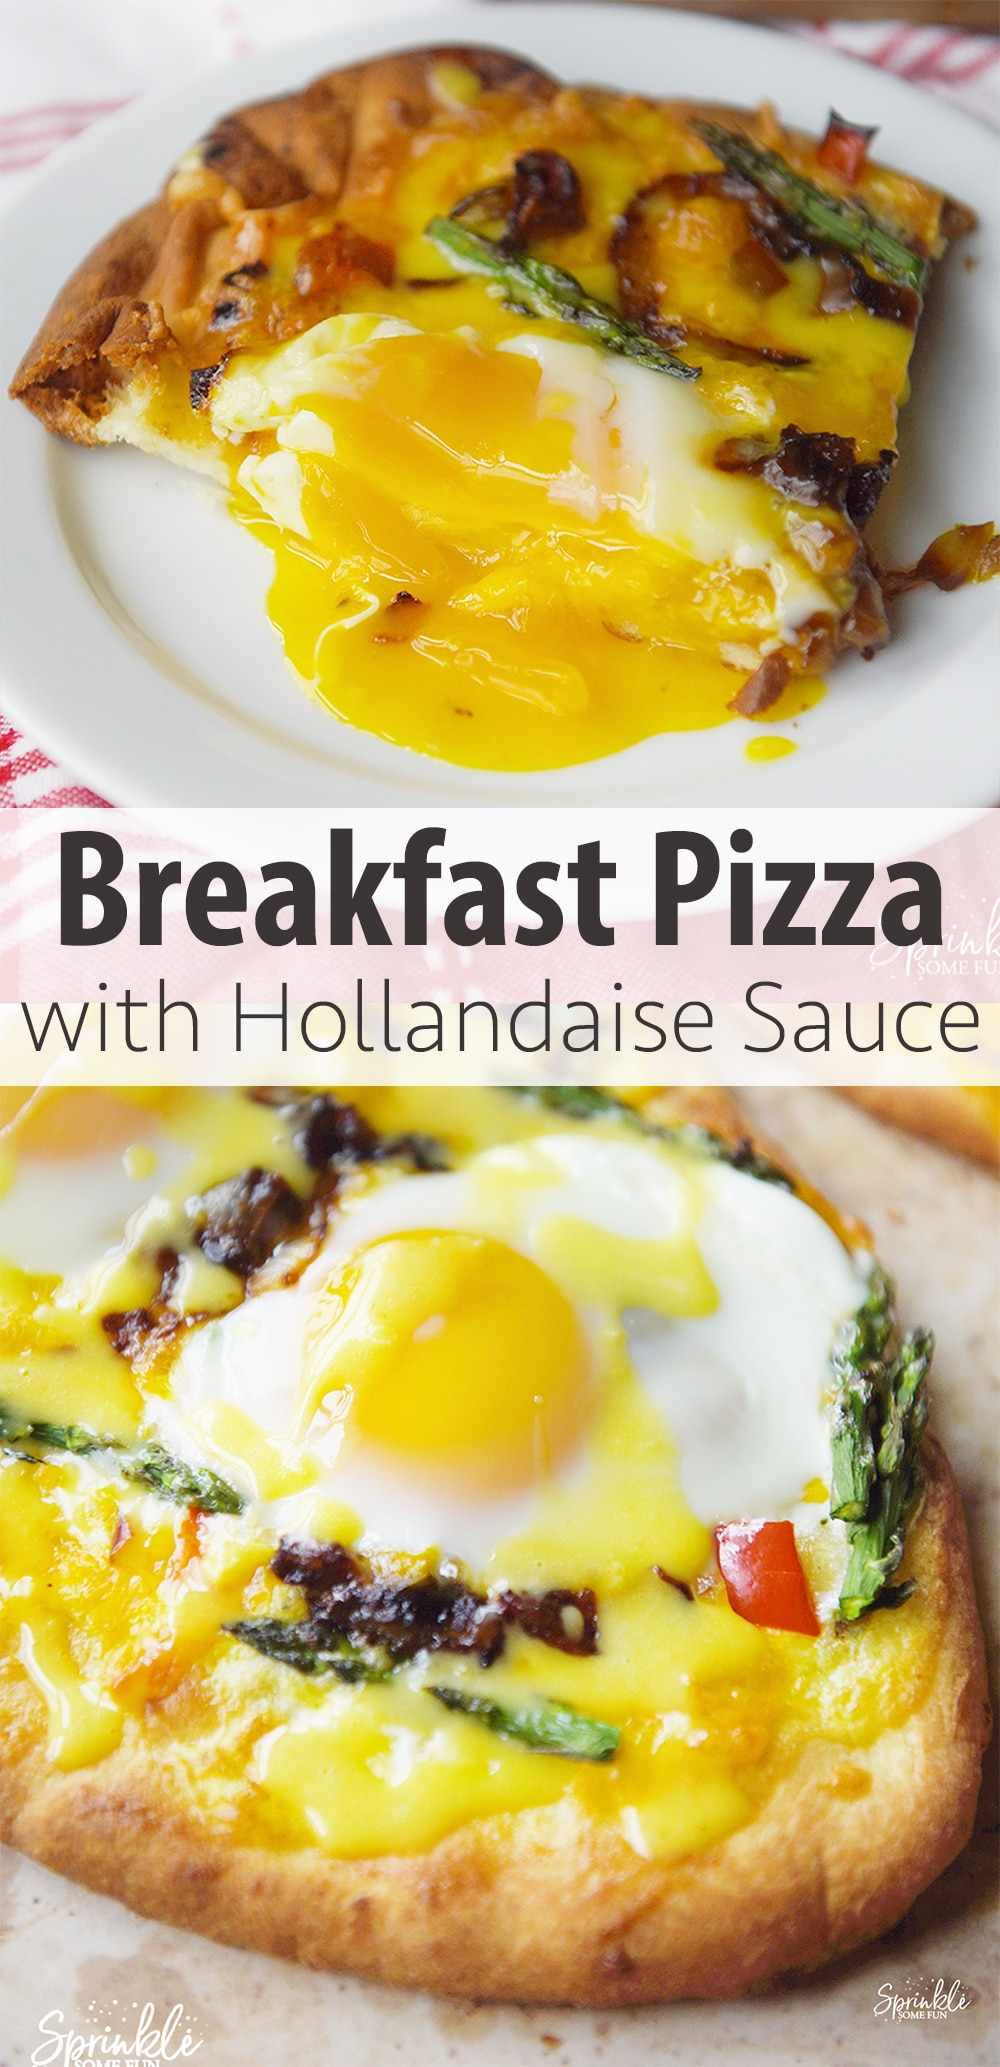 ThisBreakfast Pizza with Hollandaise Sauce is perfect as a tasty brunch idea! The creamyHollandaise sauce makes the pizza taste rich and amazing! #brunch #breakfastpizza #pizza #breakfast #lunch